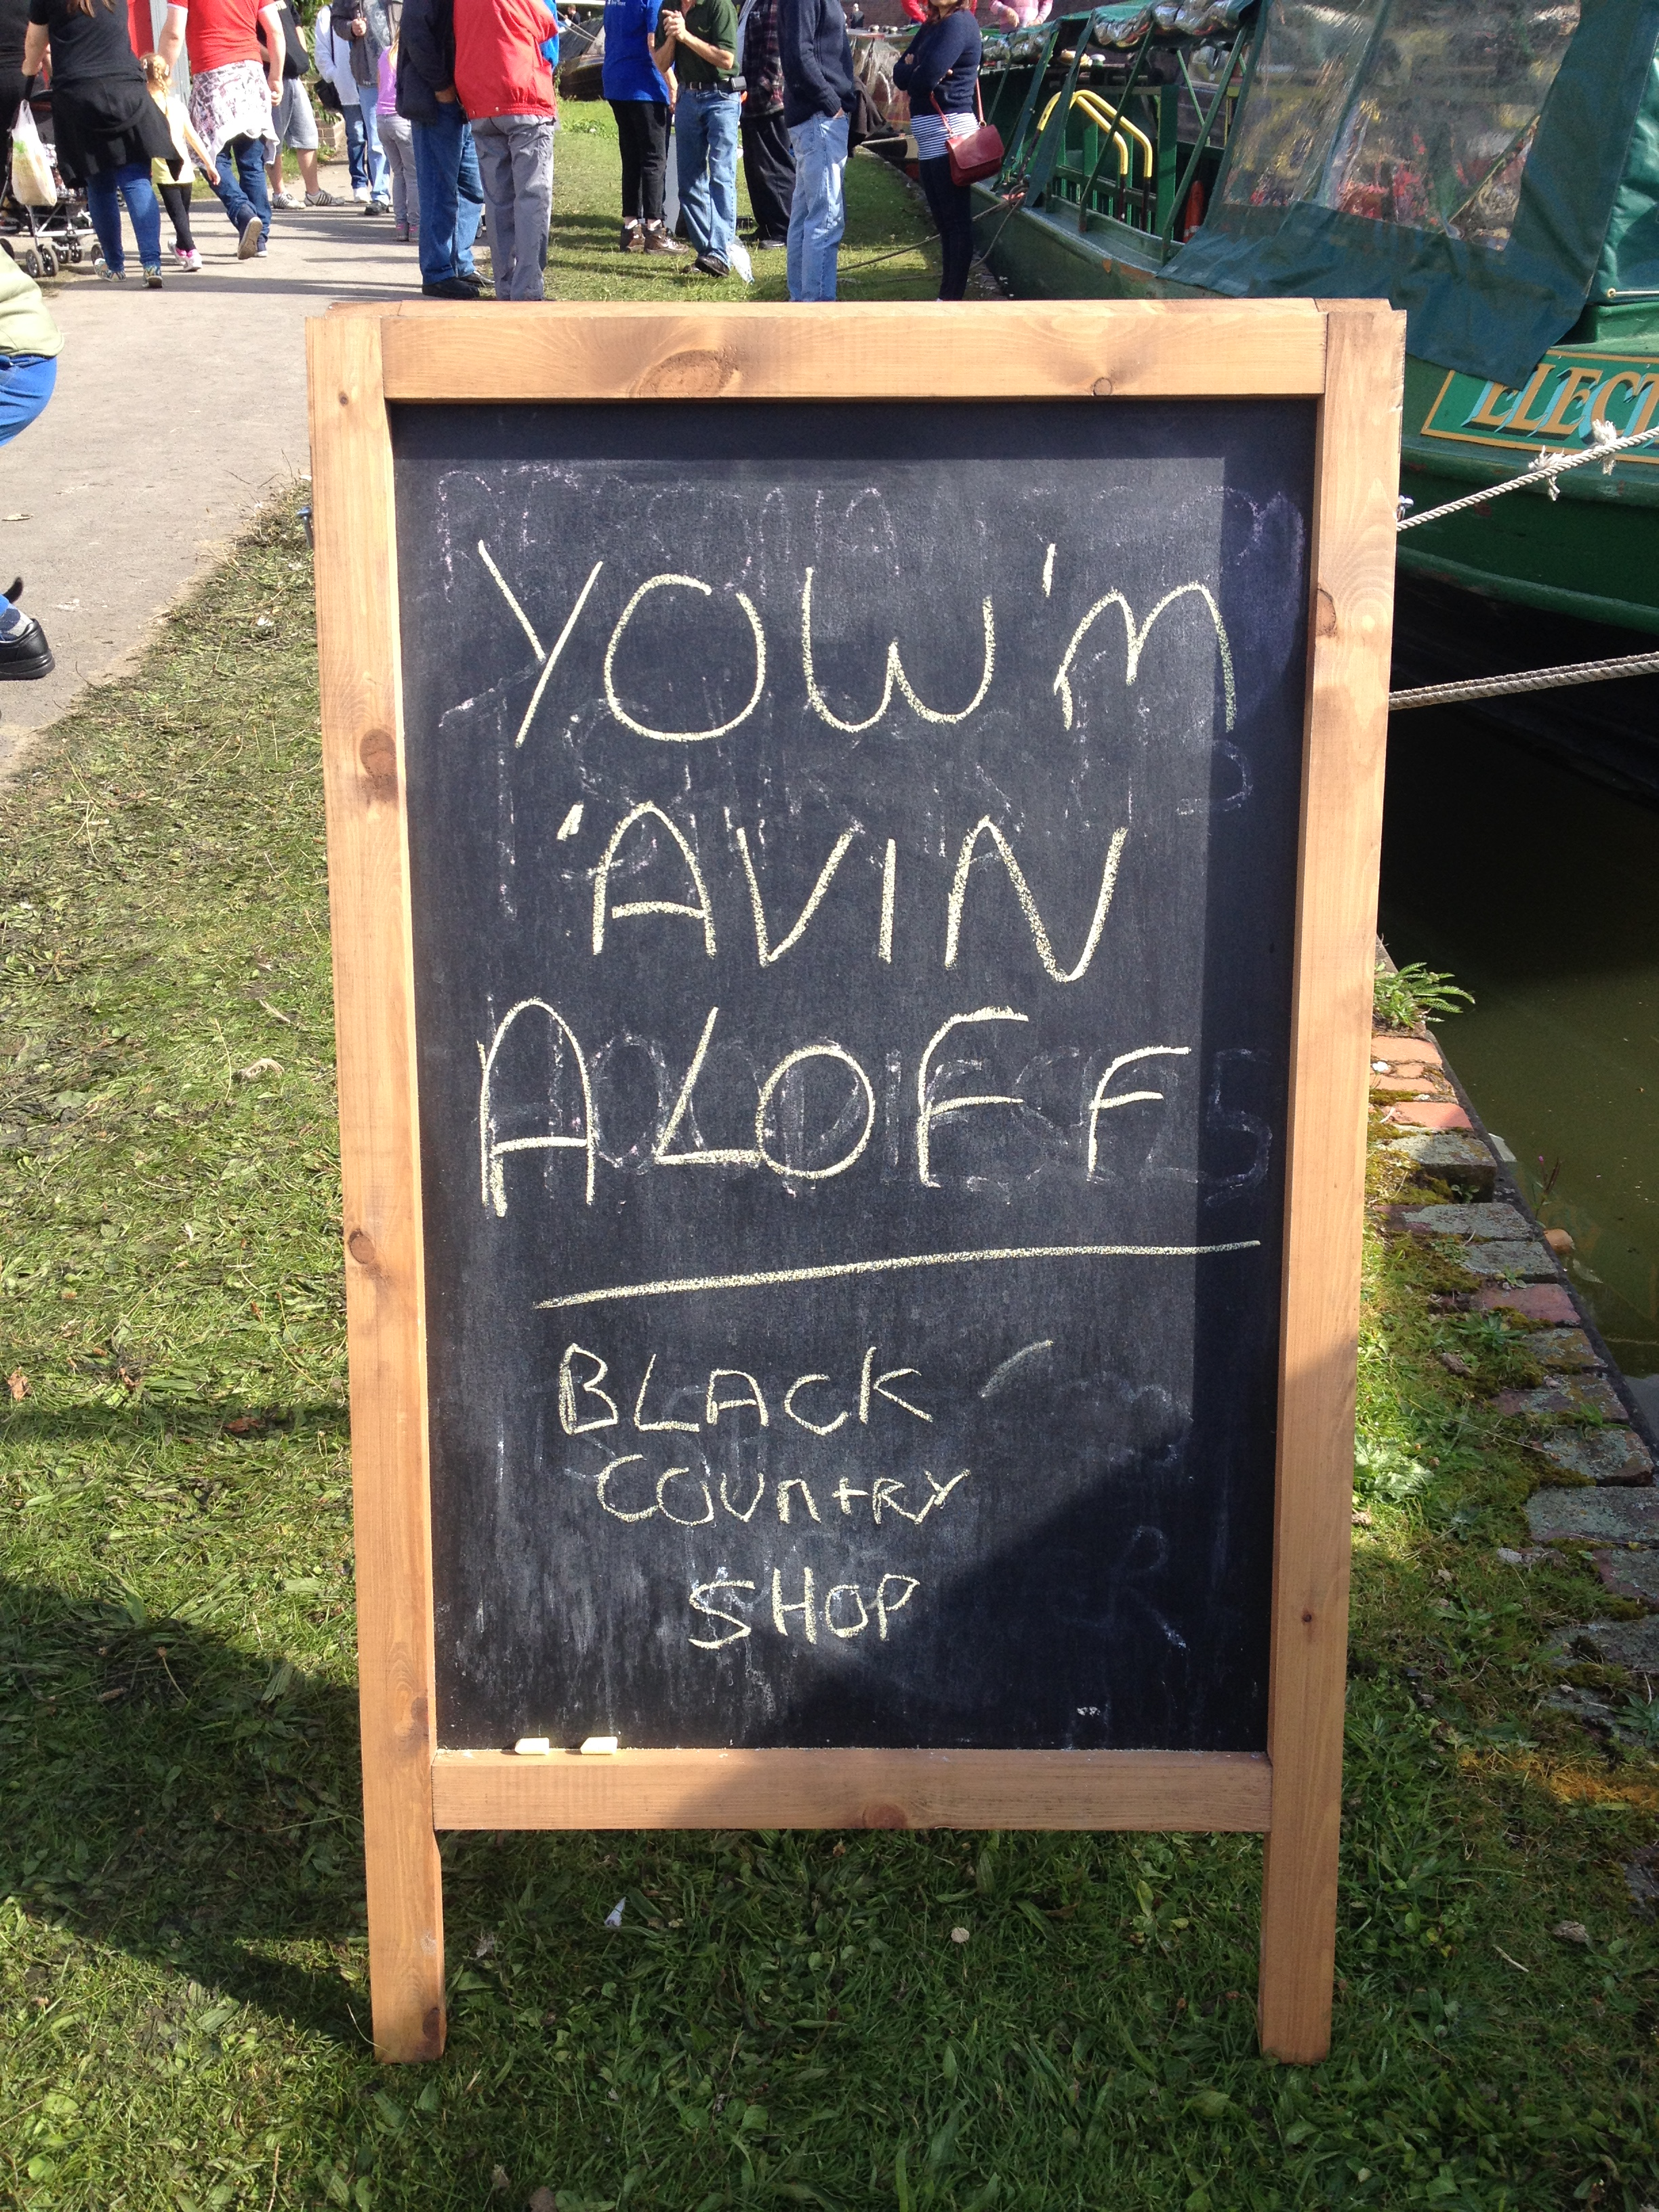 Black Country dialect